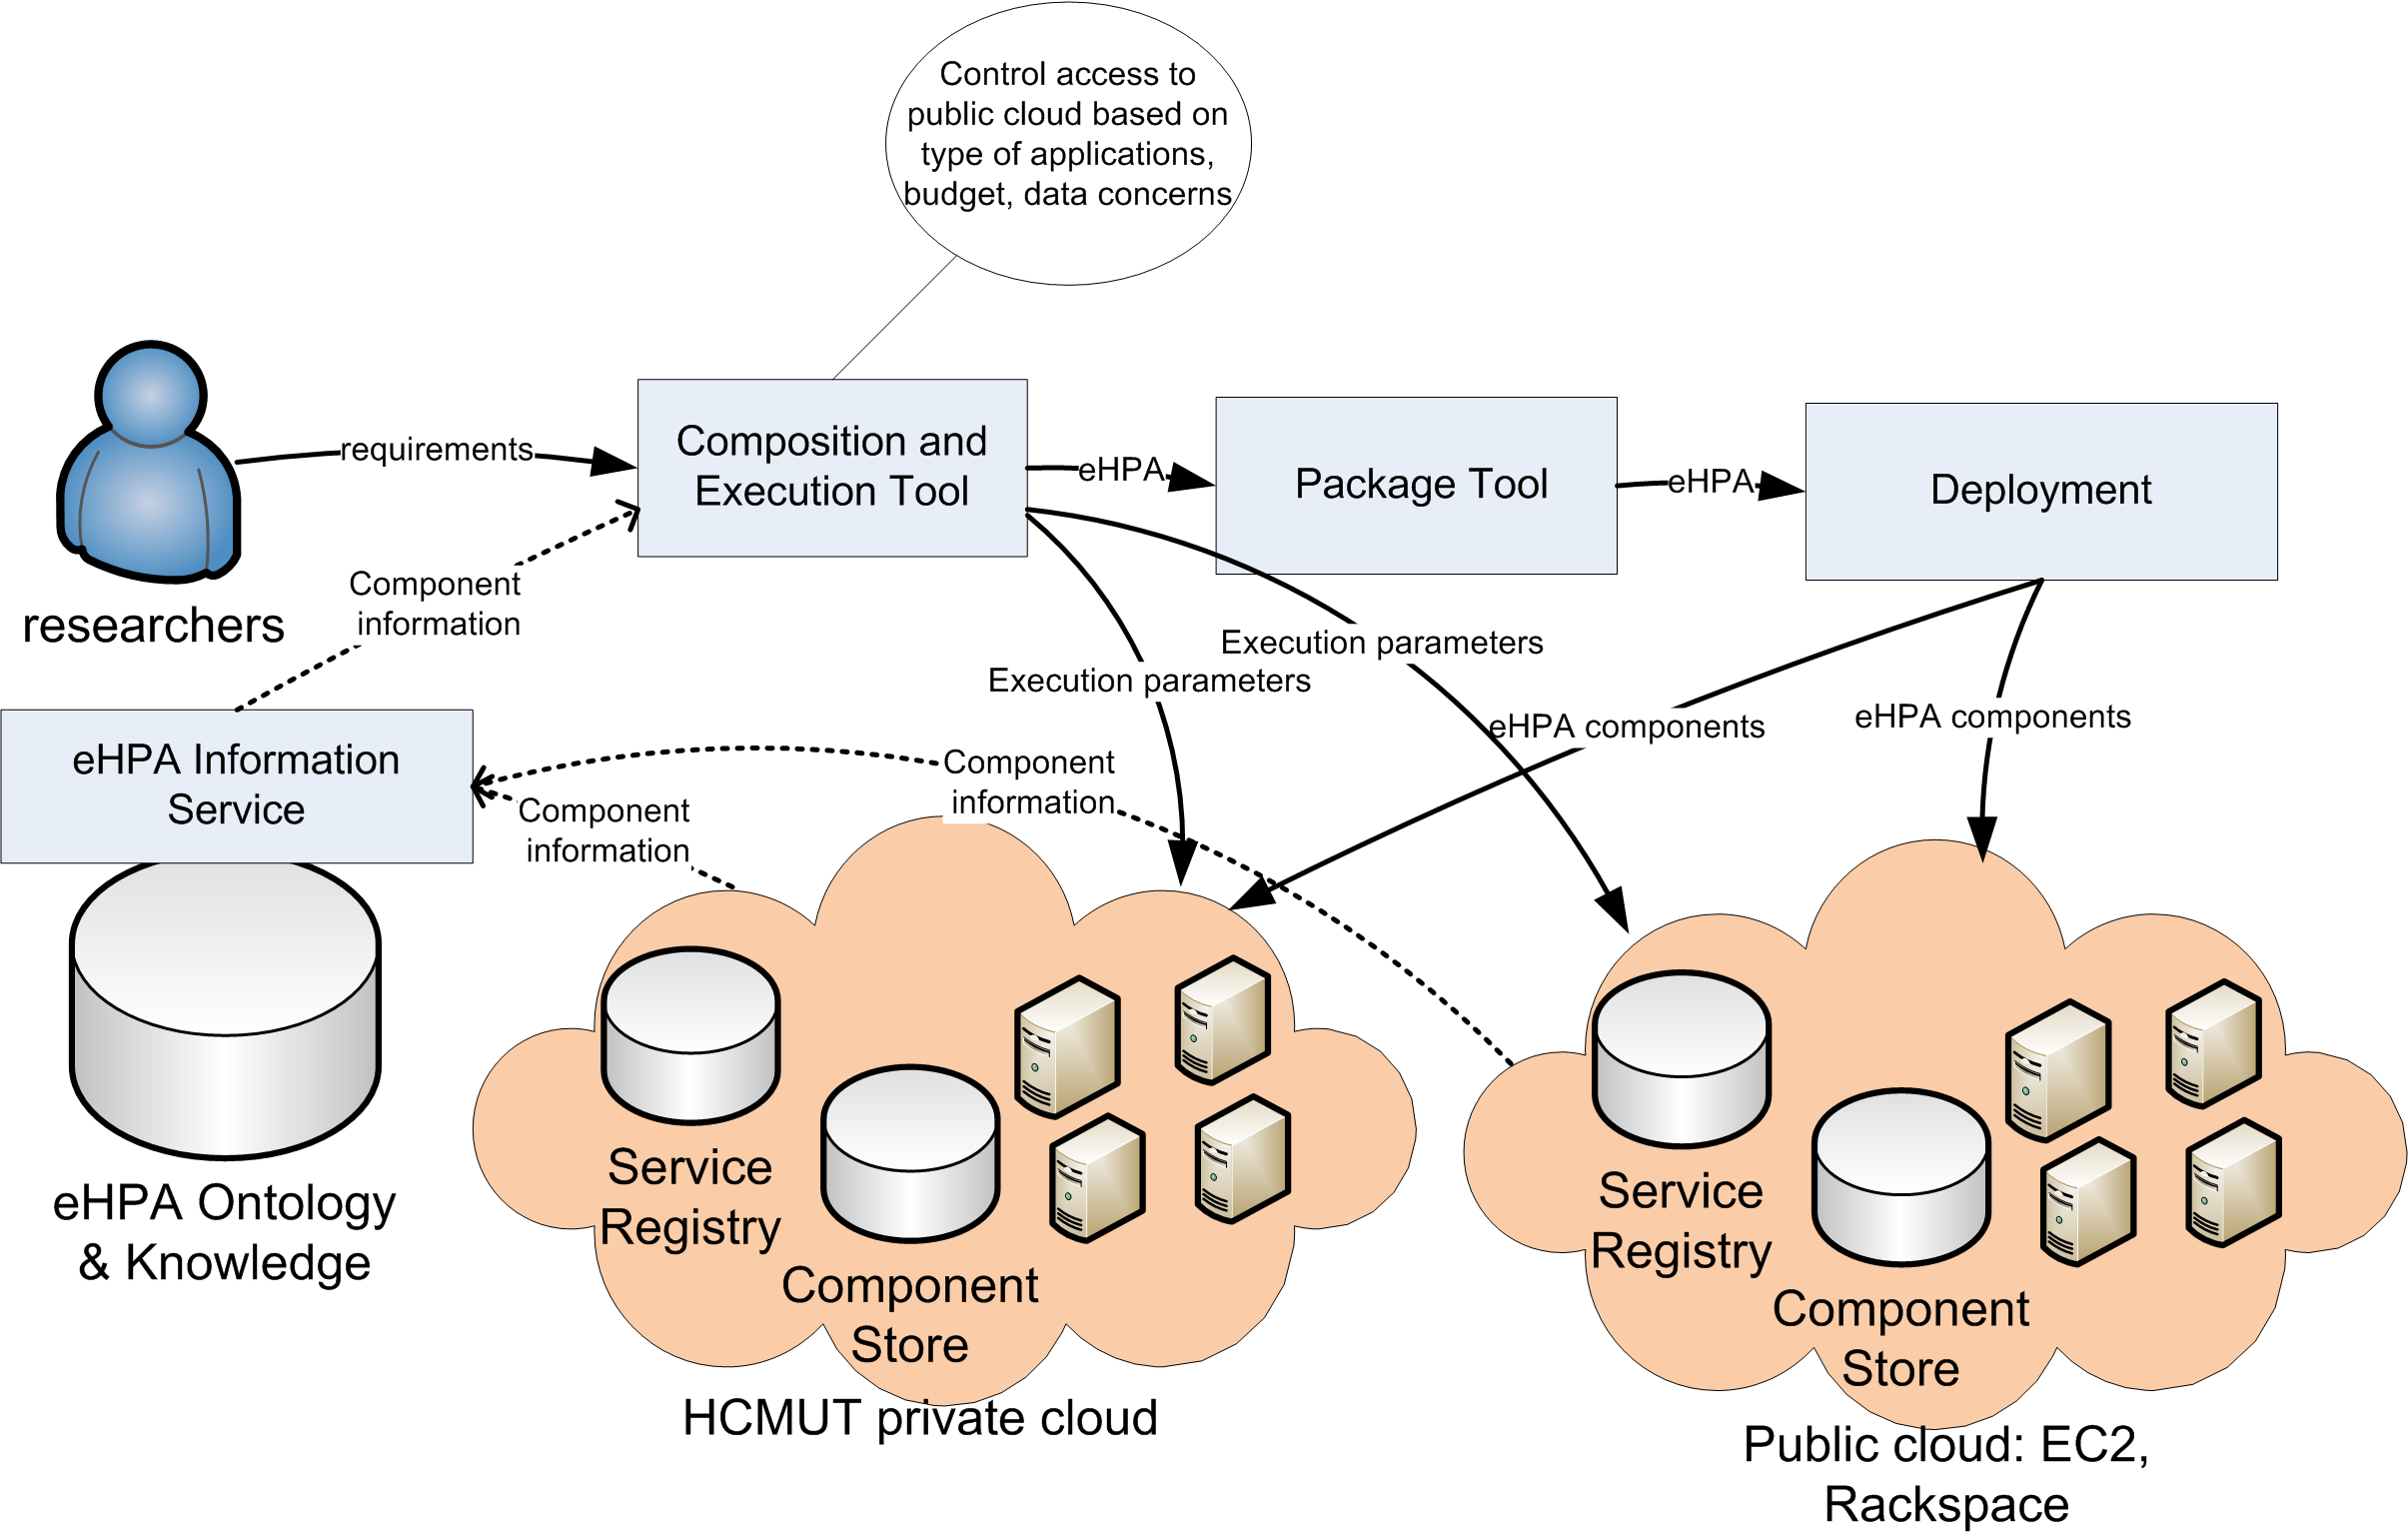 an ontology to store information about applications and their dependent components. The HCMUT private cloud is built based on Open Nebula (OpenNebula, 2011).